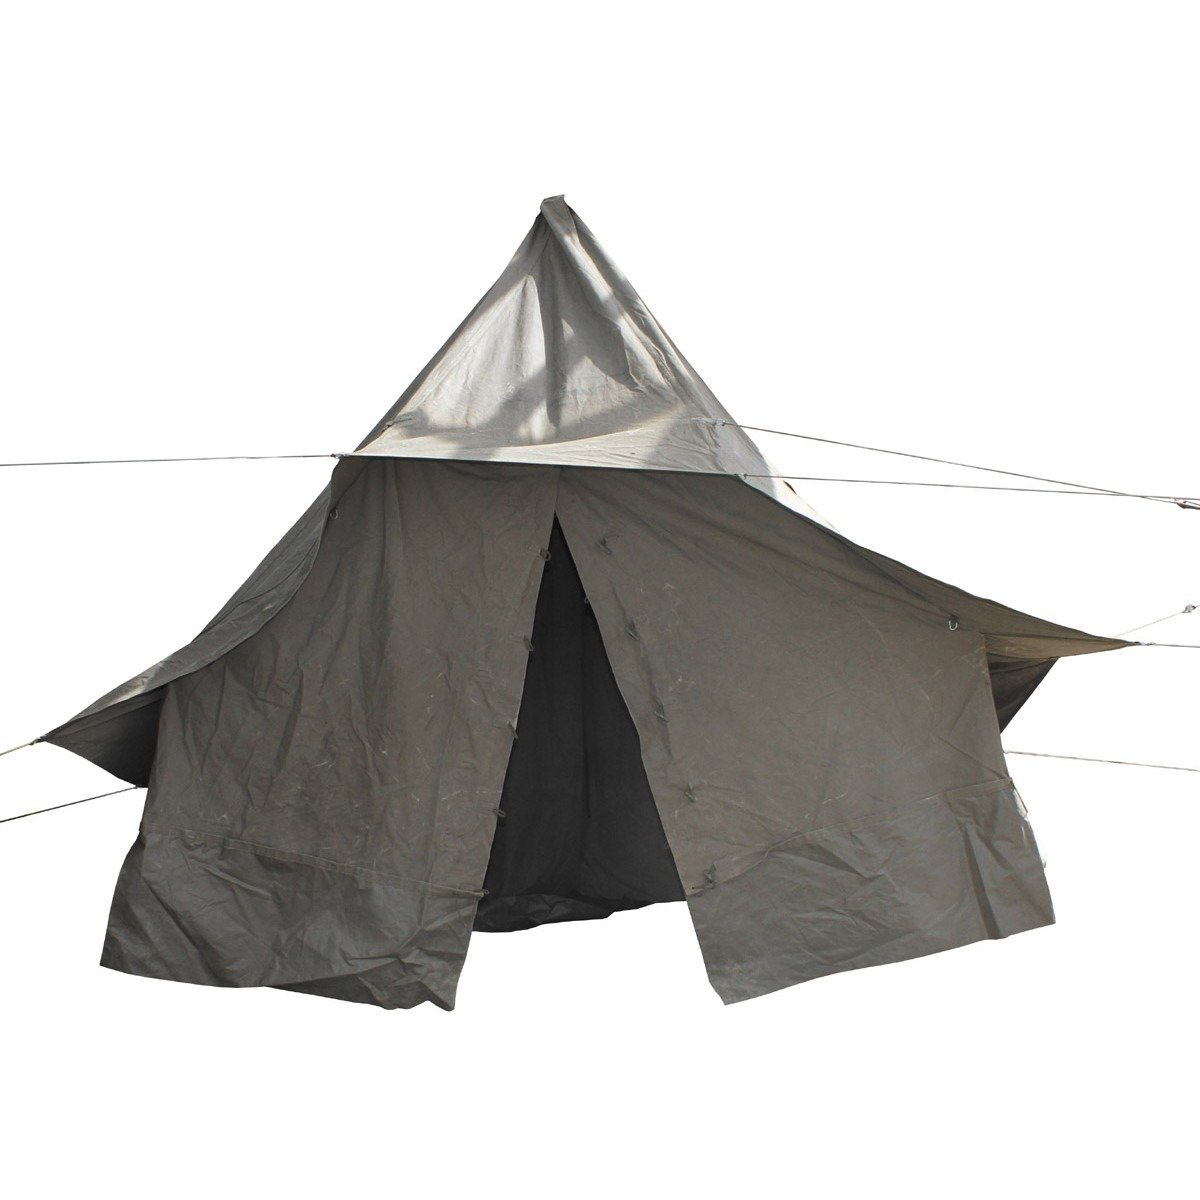 Witching Eng Pl Bh Tent Tarpaulin Tipi Od Green Used 21906 1 B H Photo Used Nikon Lenses Bh Photo Used Phones dpreview Bh Photo Used